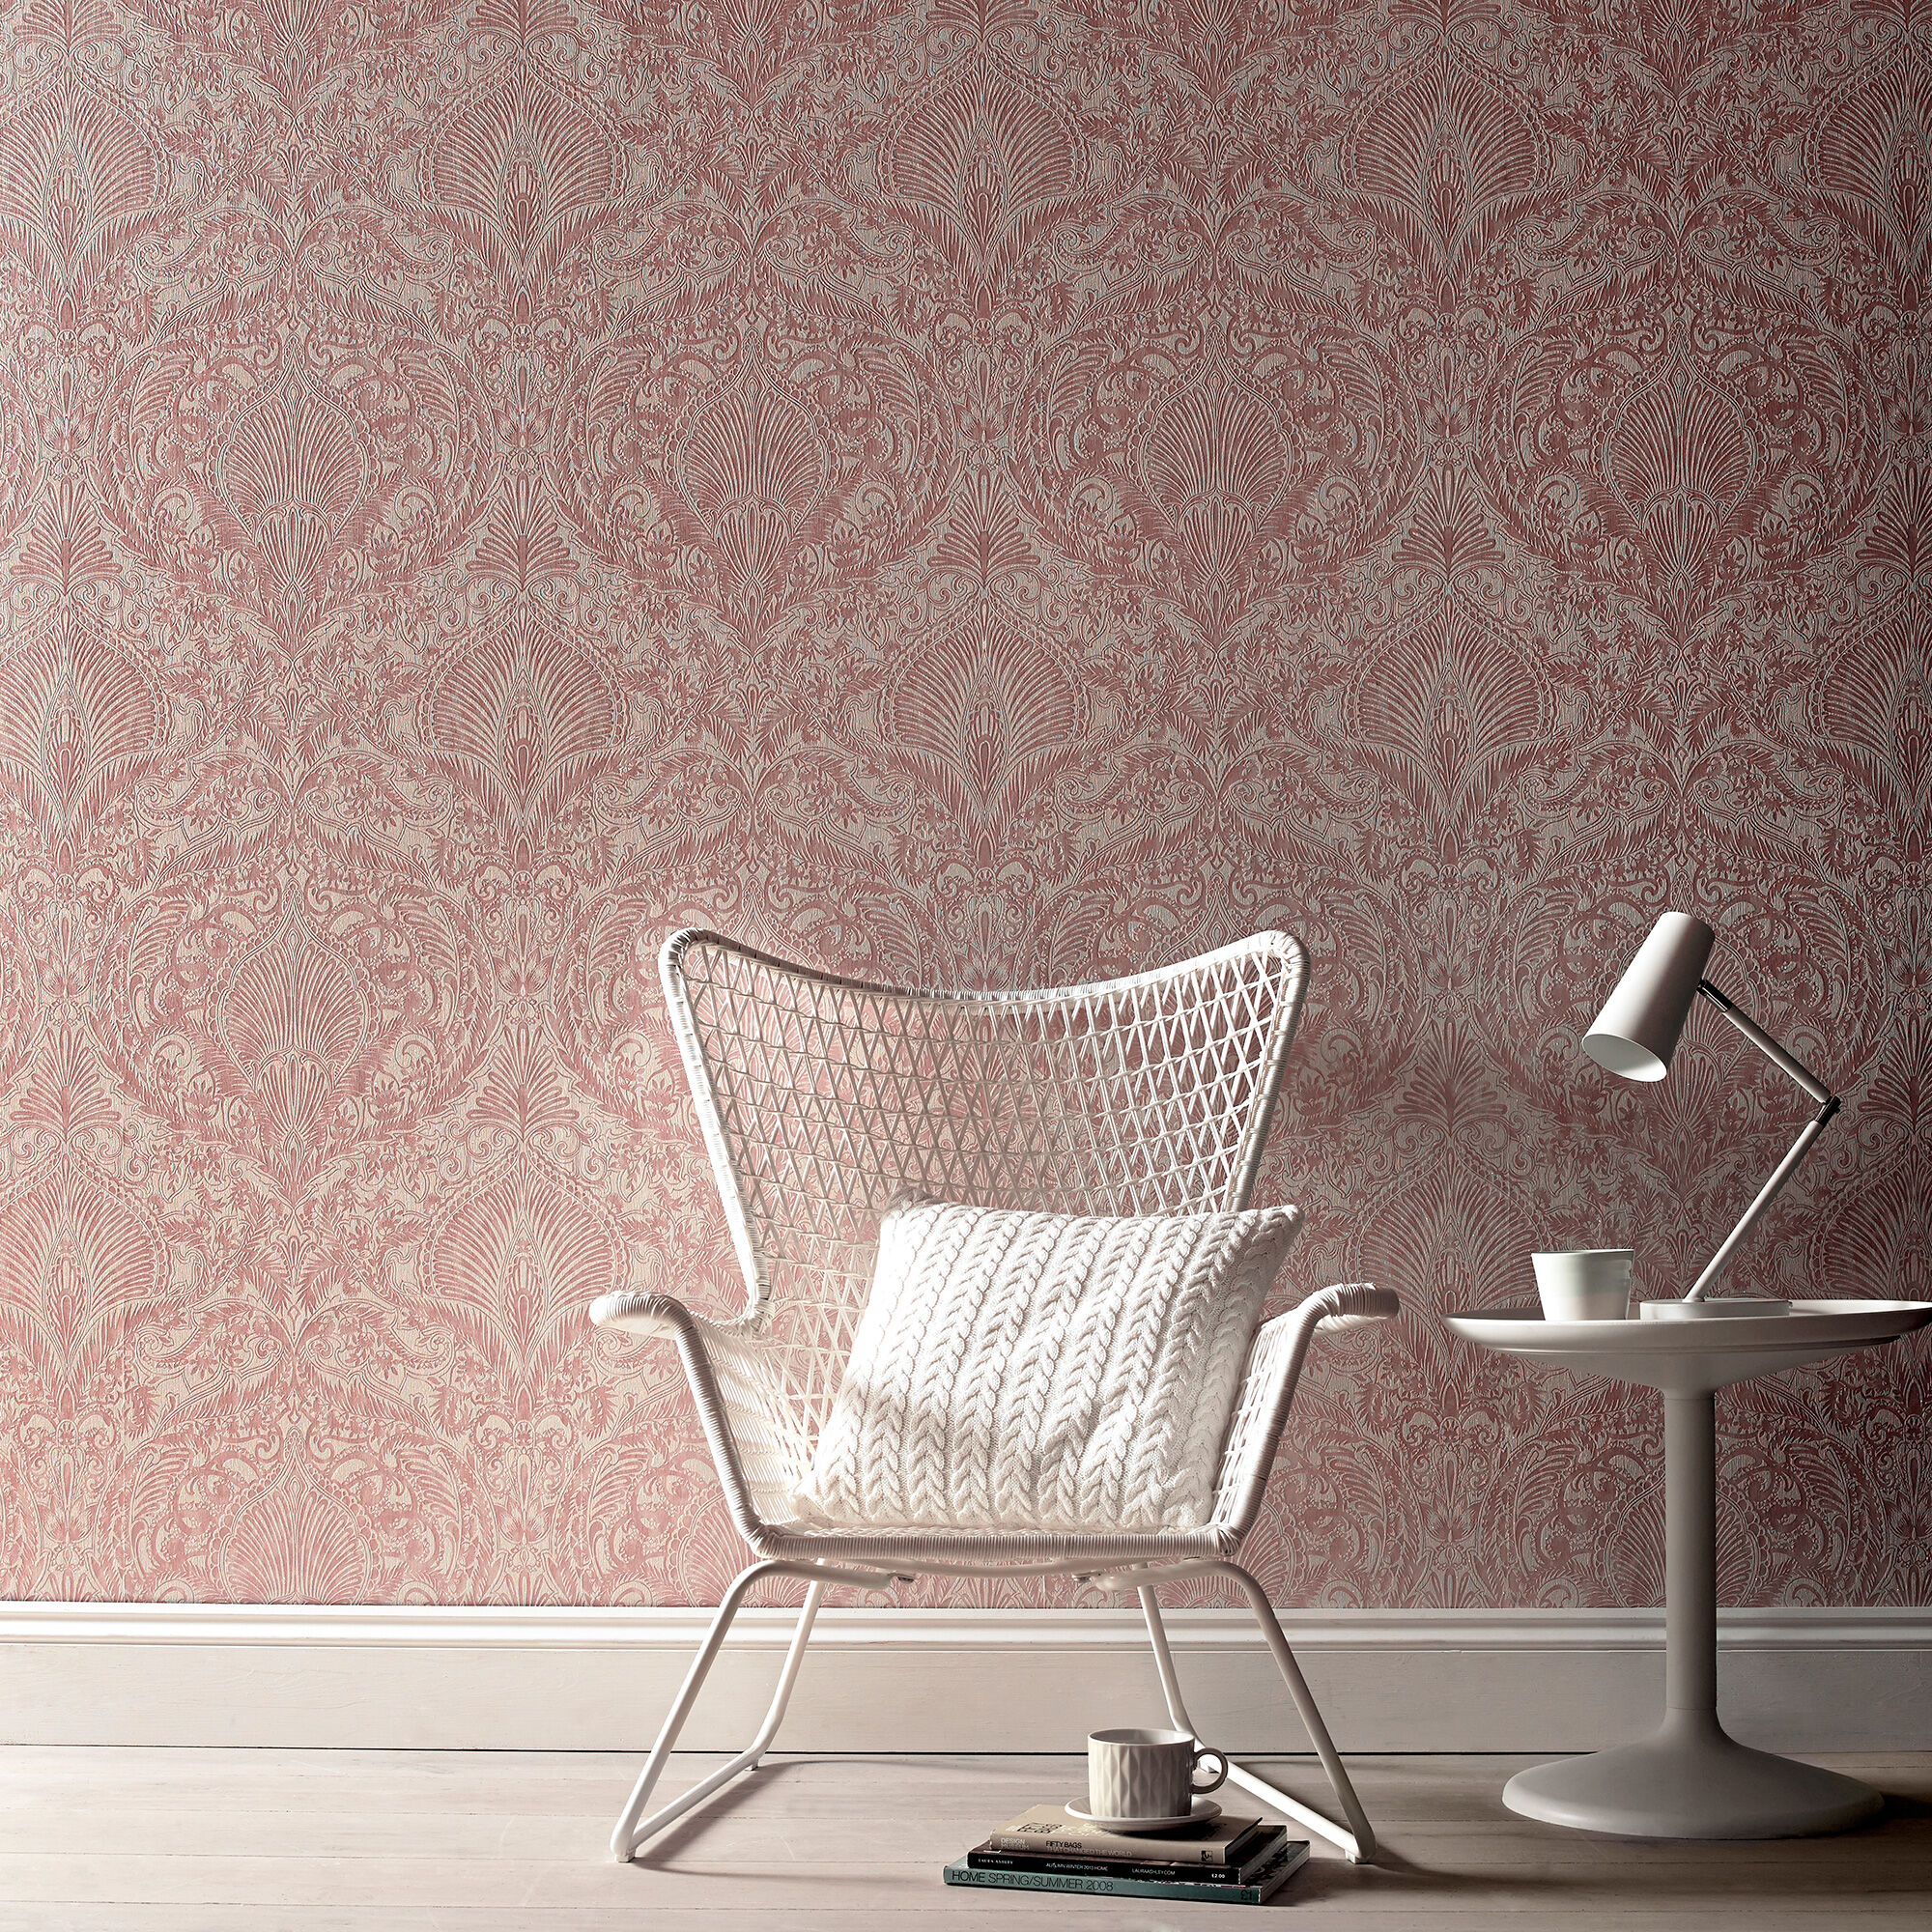 Burlesque Pink And White Wallpaper, ...